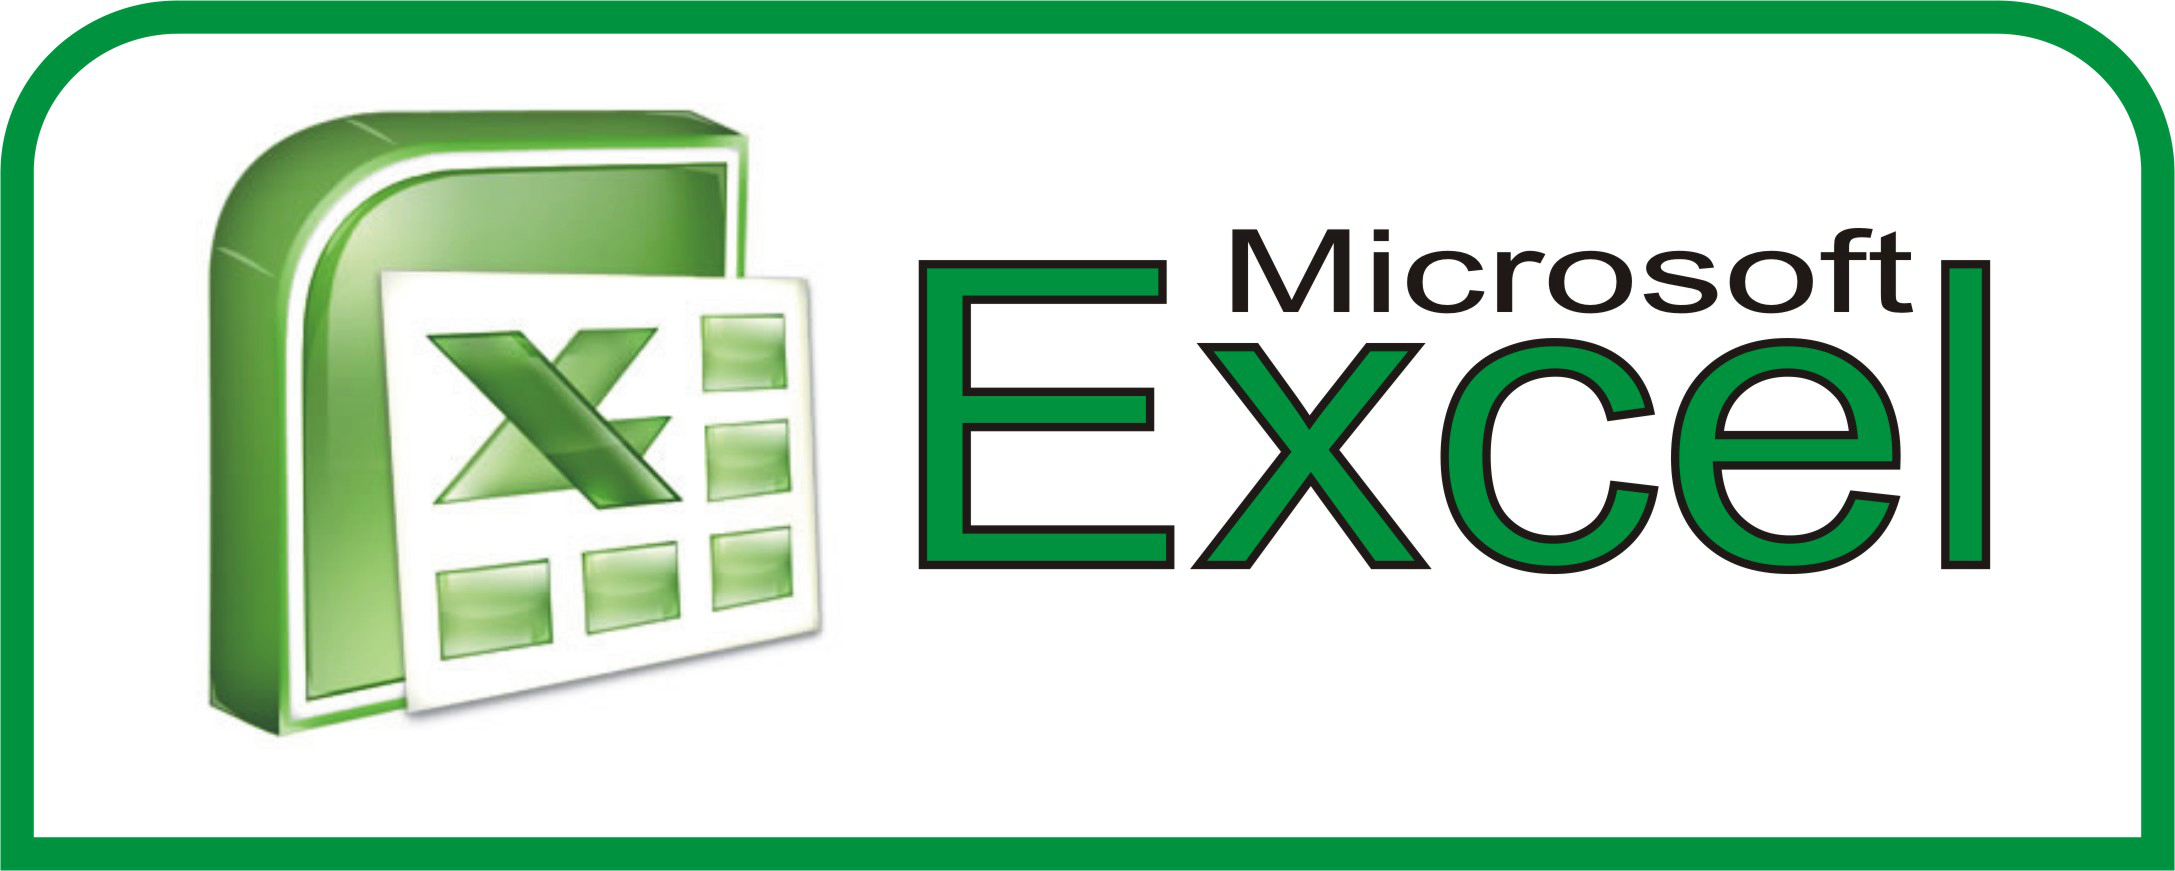 Ediblewildsus  Picturesque  Excel Shortcuts You Probably Didnt Know About  Techdissected With Great Excel Dynamic Charts Besides Excel  Torrent Furthermore Microsoft Excel Lesson Plans With Amusing Relative And Absolute References In Excel Also Ms Excel Text Function In Addition Number Generator Excel And Free Excel Schedule Template As Well As Daily Compound Interest Formula Excel Additionally Media Plan Template Excel From Techdissectedcom With Ediblewildsus  Great  Excel Shortcuts You Probably Didnt Know About  Techdissected With Amusing Excel Dynamic Charts Besides Excel  Torrent Furthermore Microsoft Excel Lesson Plans And Picturesque Relative And Absolute References In Excel Also Ms Excel Text Function In Addition Number Generator Excel From Techdissectedcom